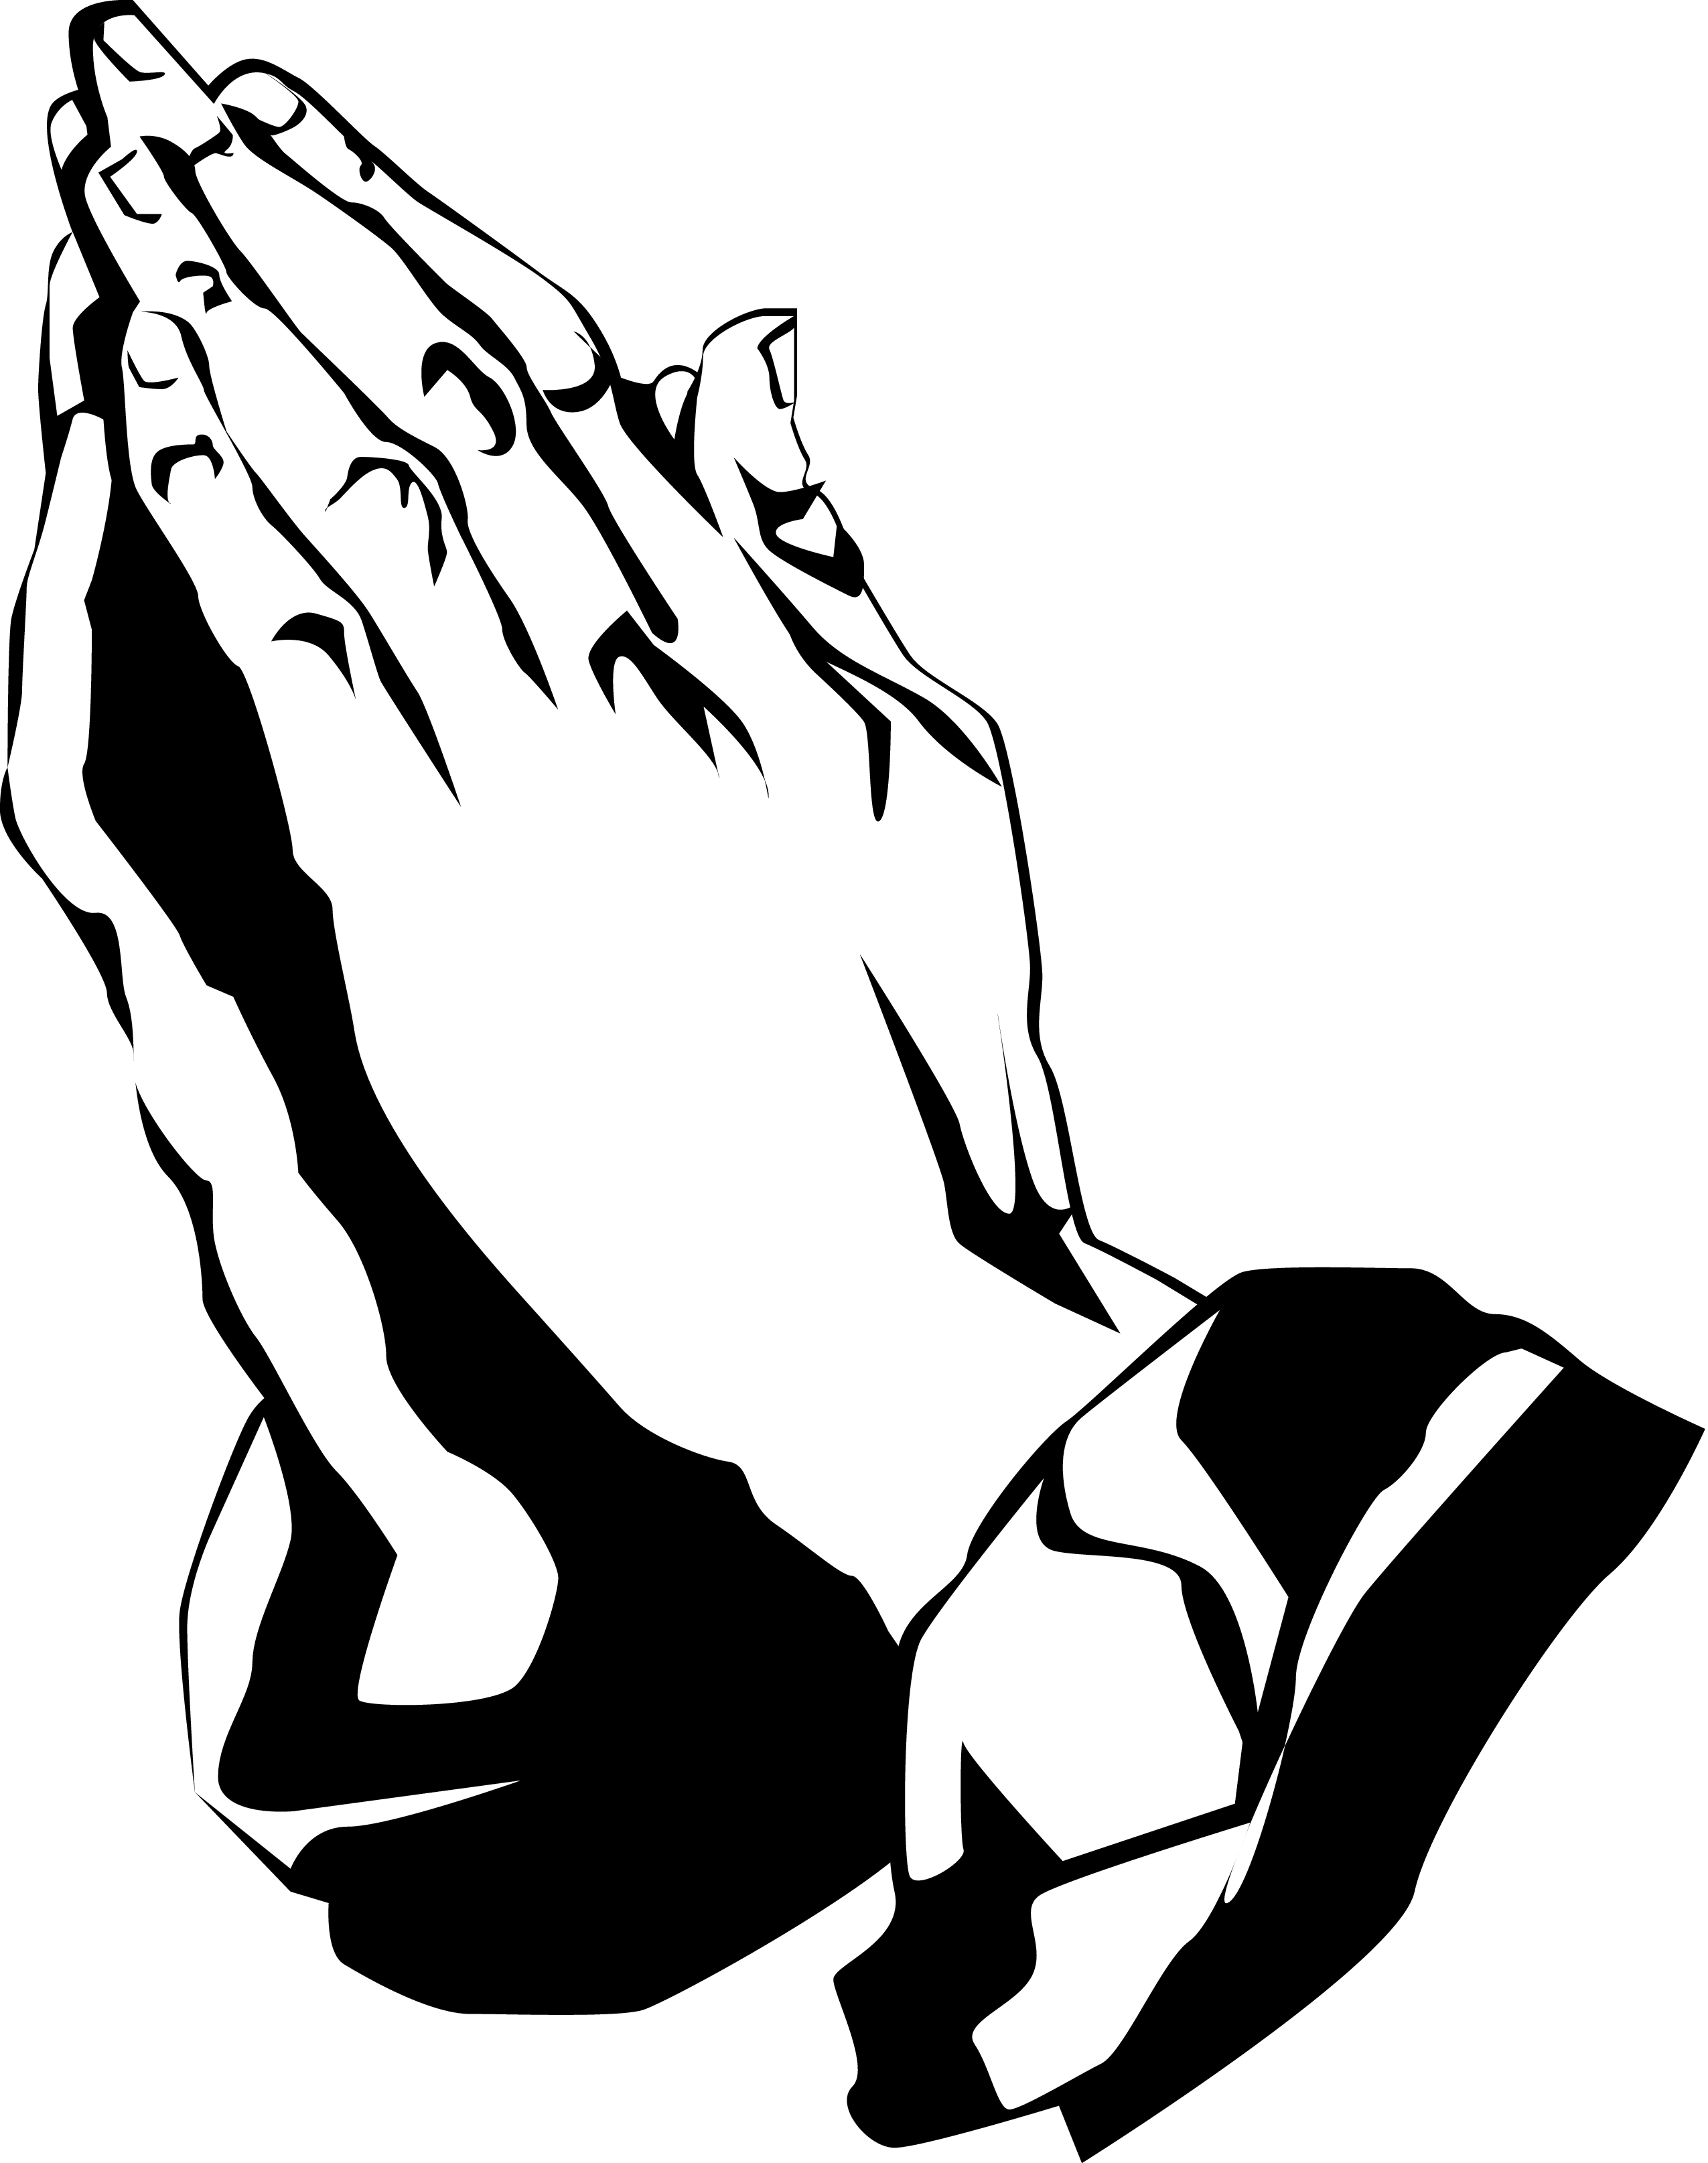 hands open drawing at getdrawings com free for personal use hands rh getdrawings com  prayer hands clipart free